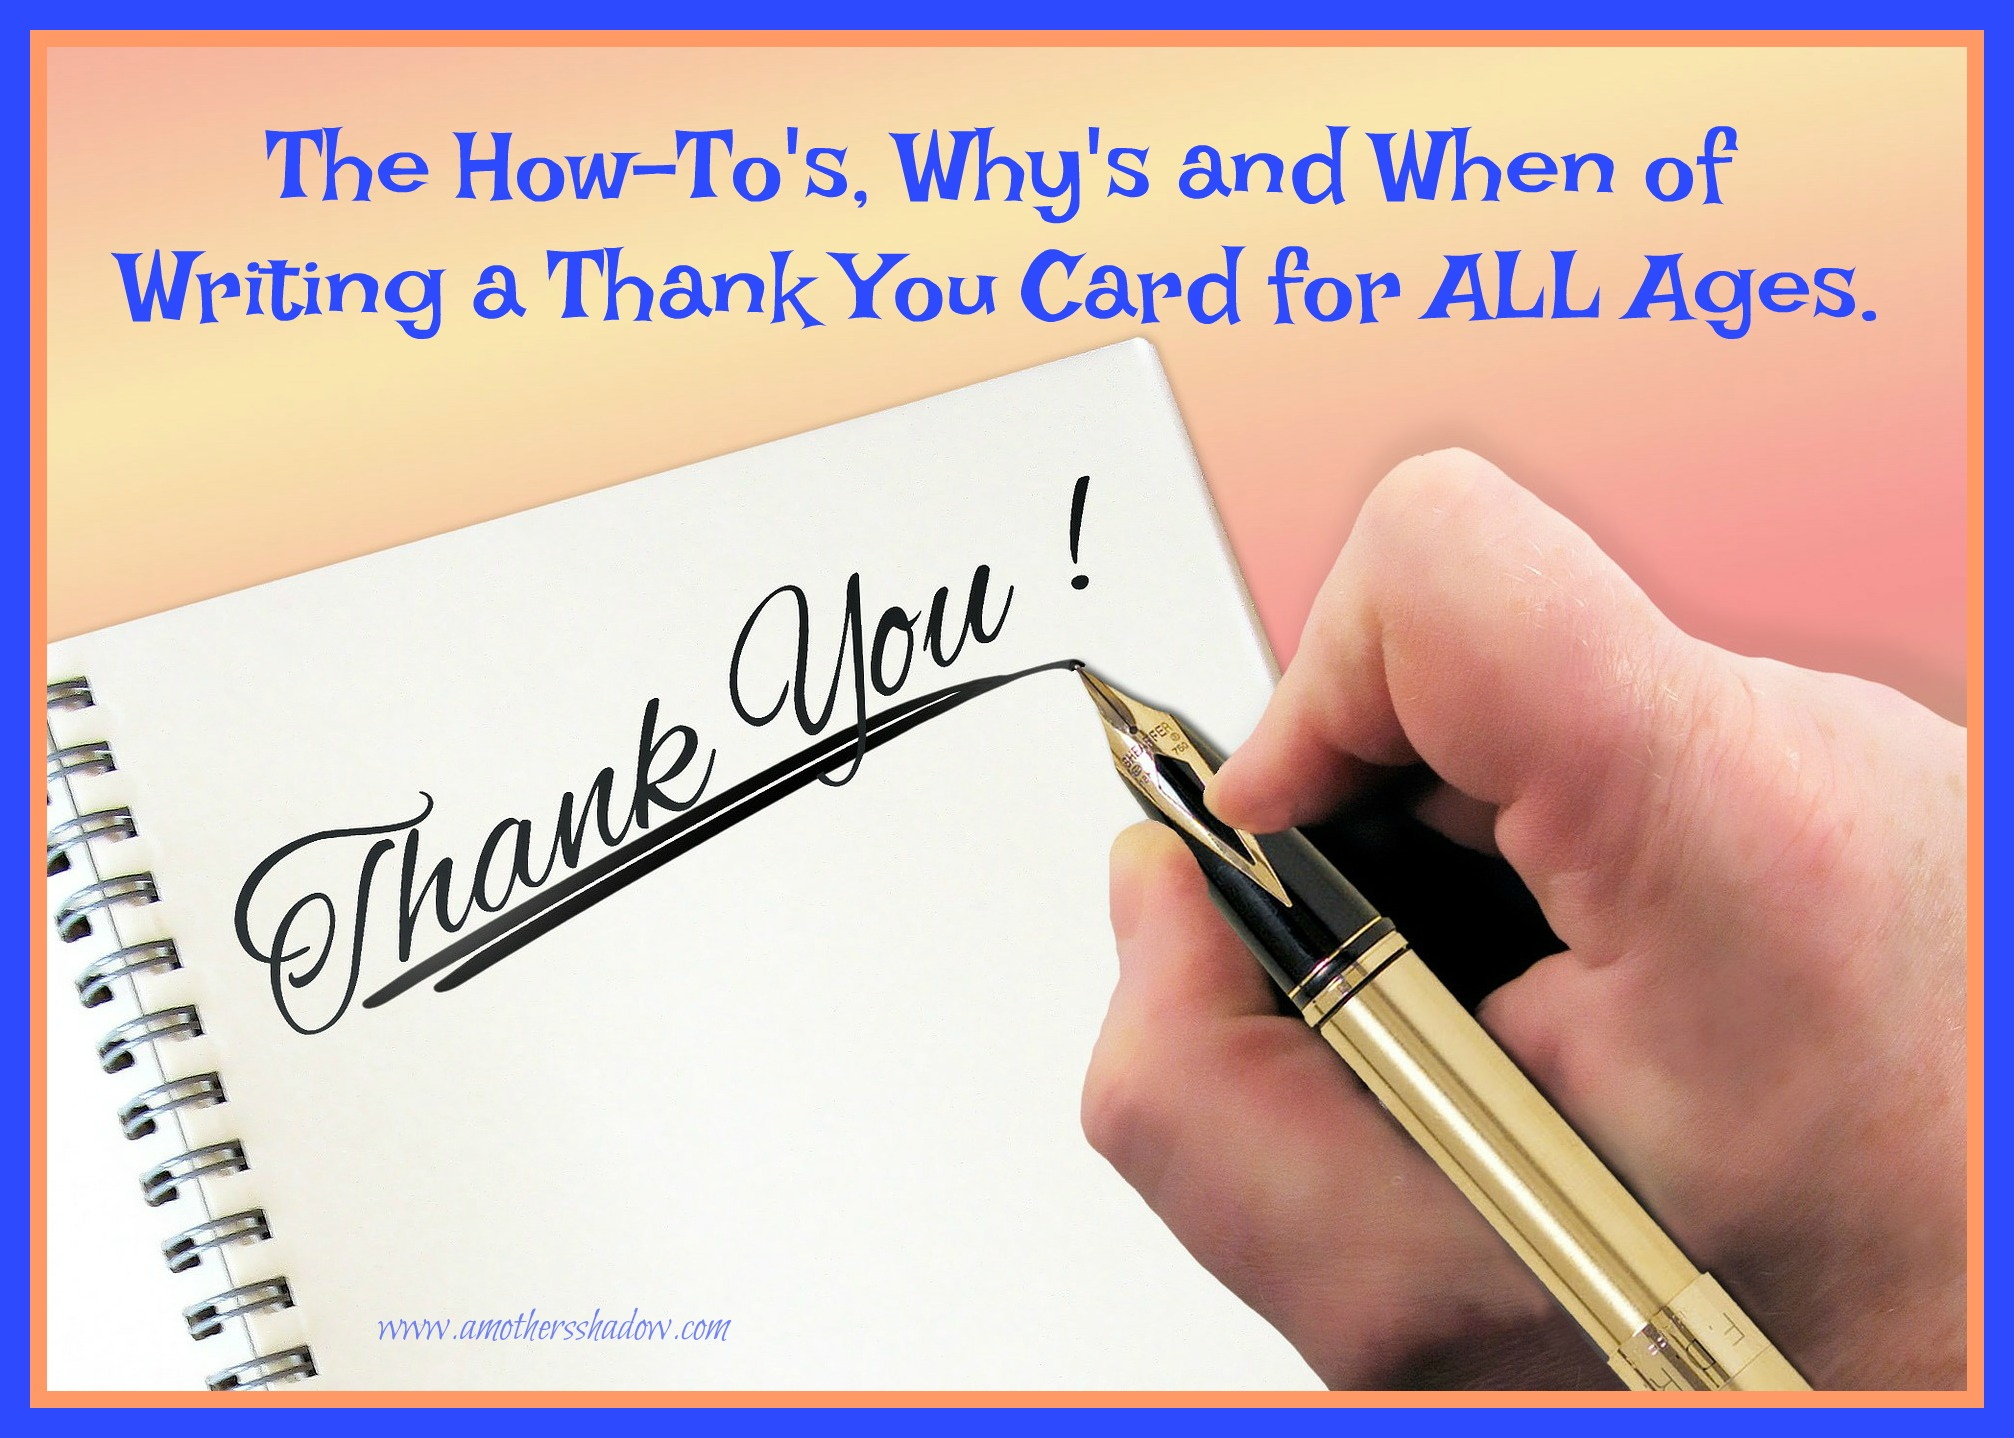 The polite and proper EASY way to write a thank you note